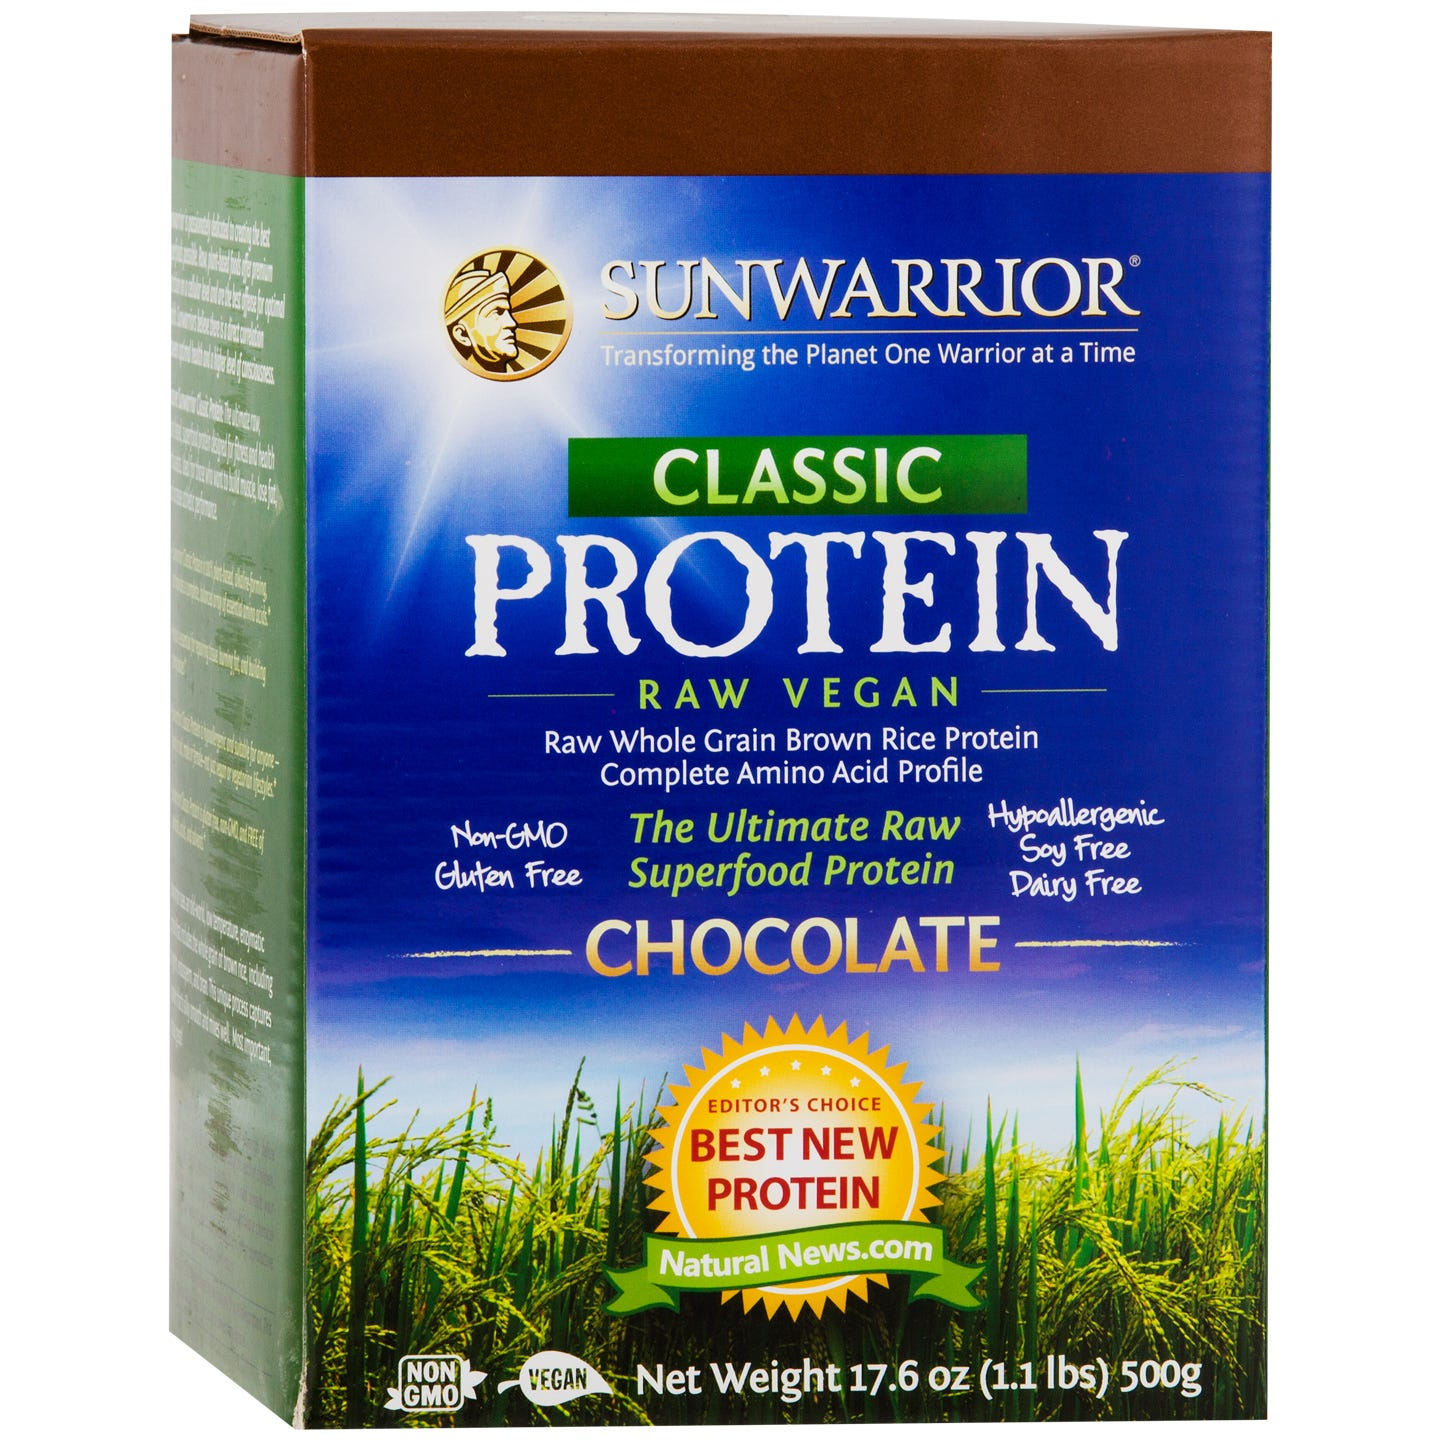 Classic Protein Chocolate 1.1lb, Sunwarrior - Rapid Diet Weight Loss Products Shop